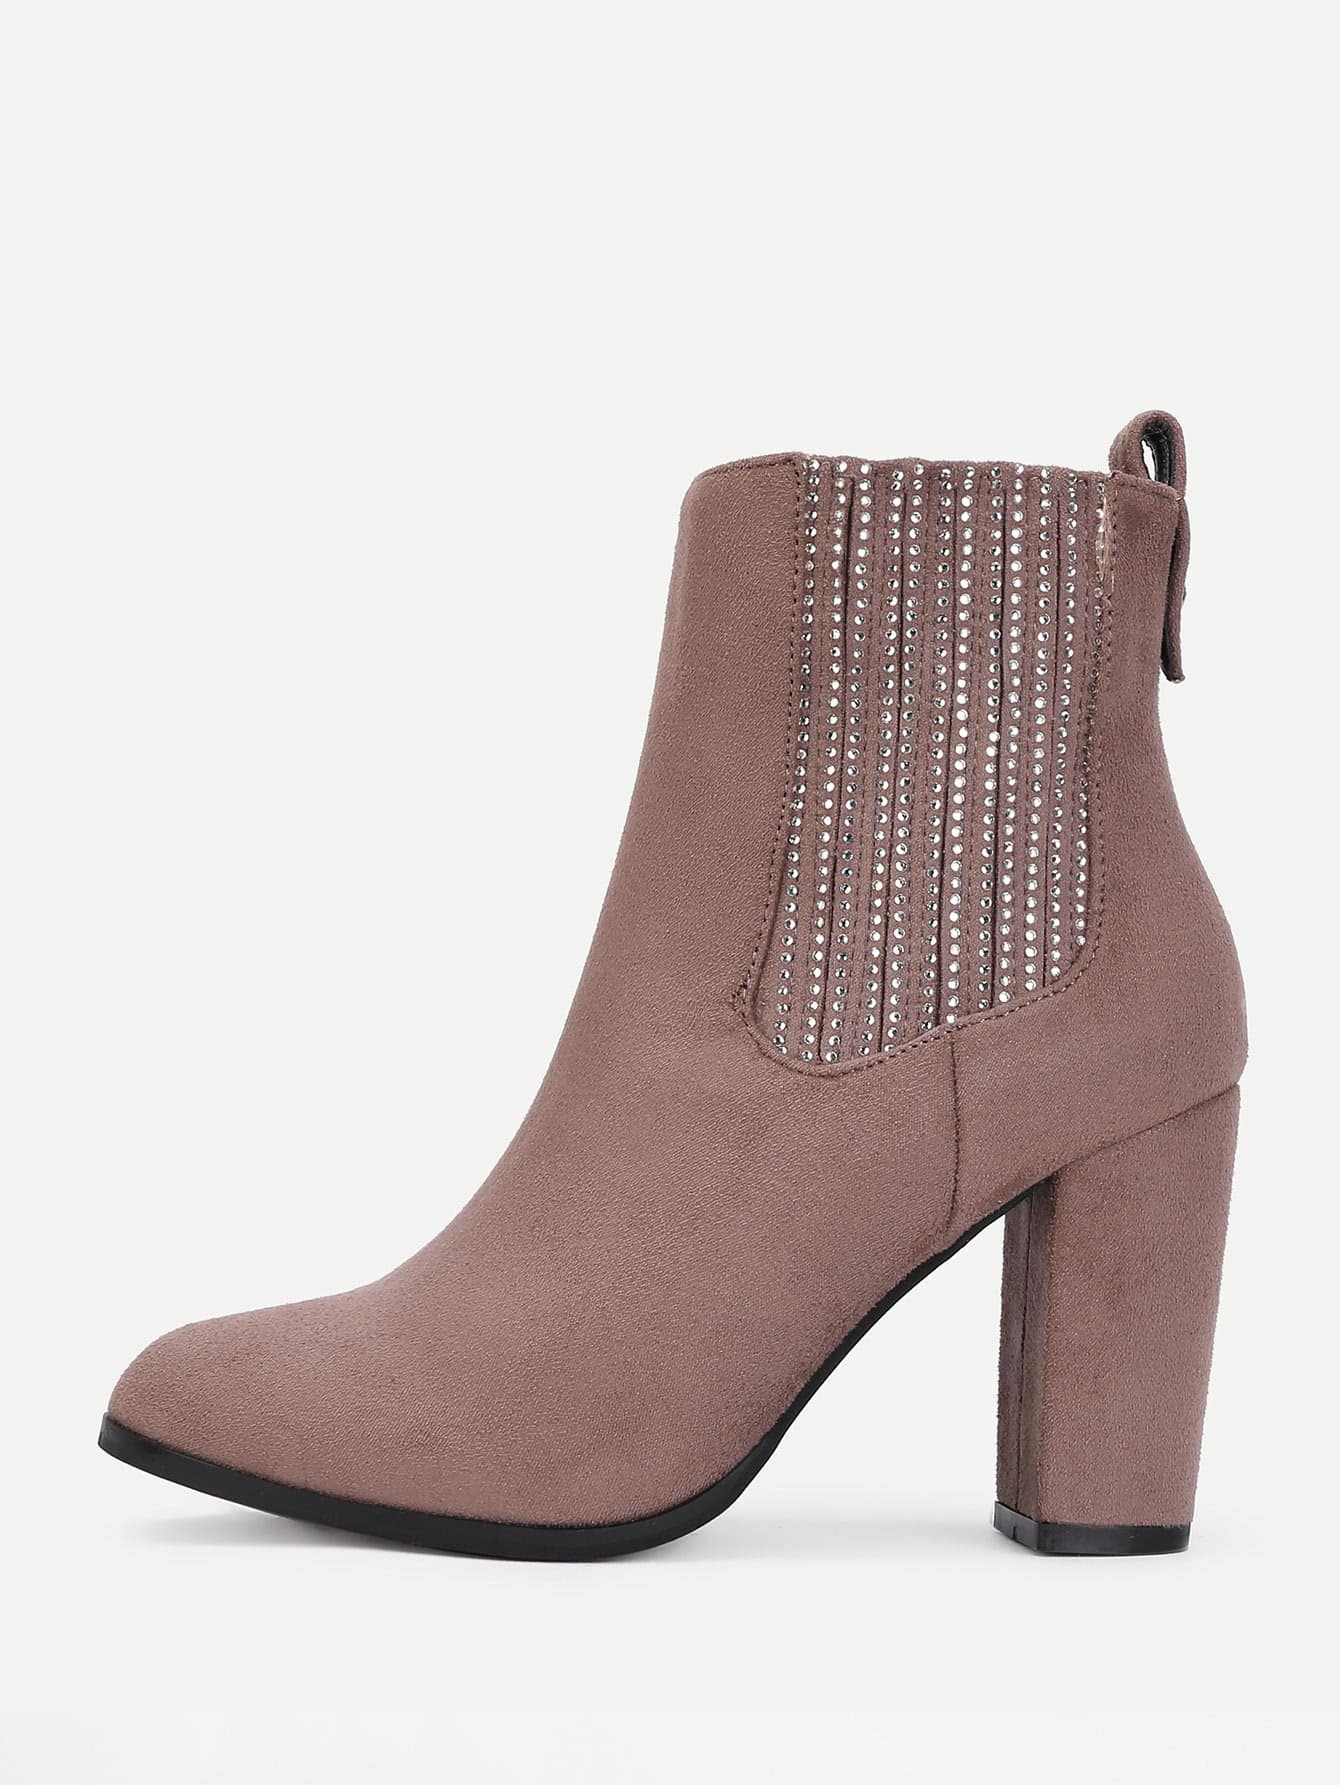 Studded Detail Wide Fit Ankle Boots планшет prestigio multipad wize 3151 3g 16 gb черный